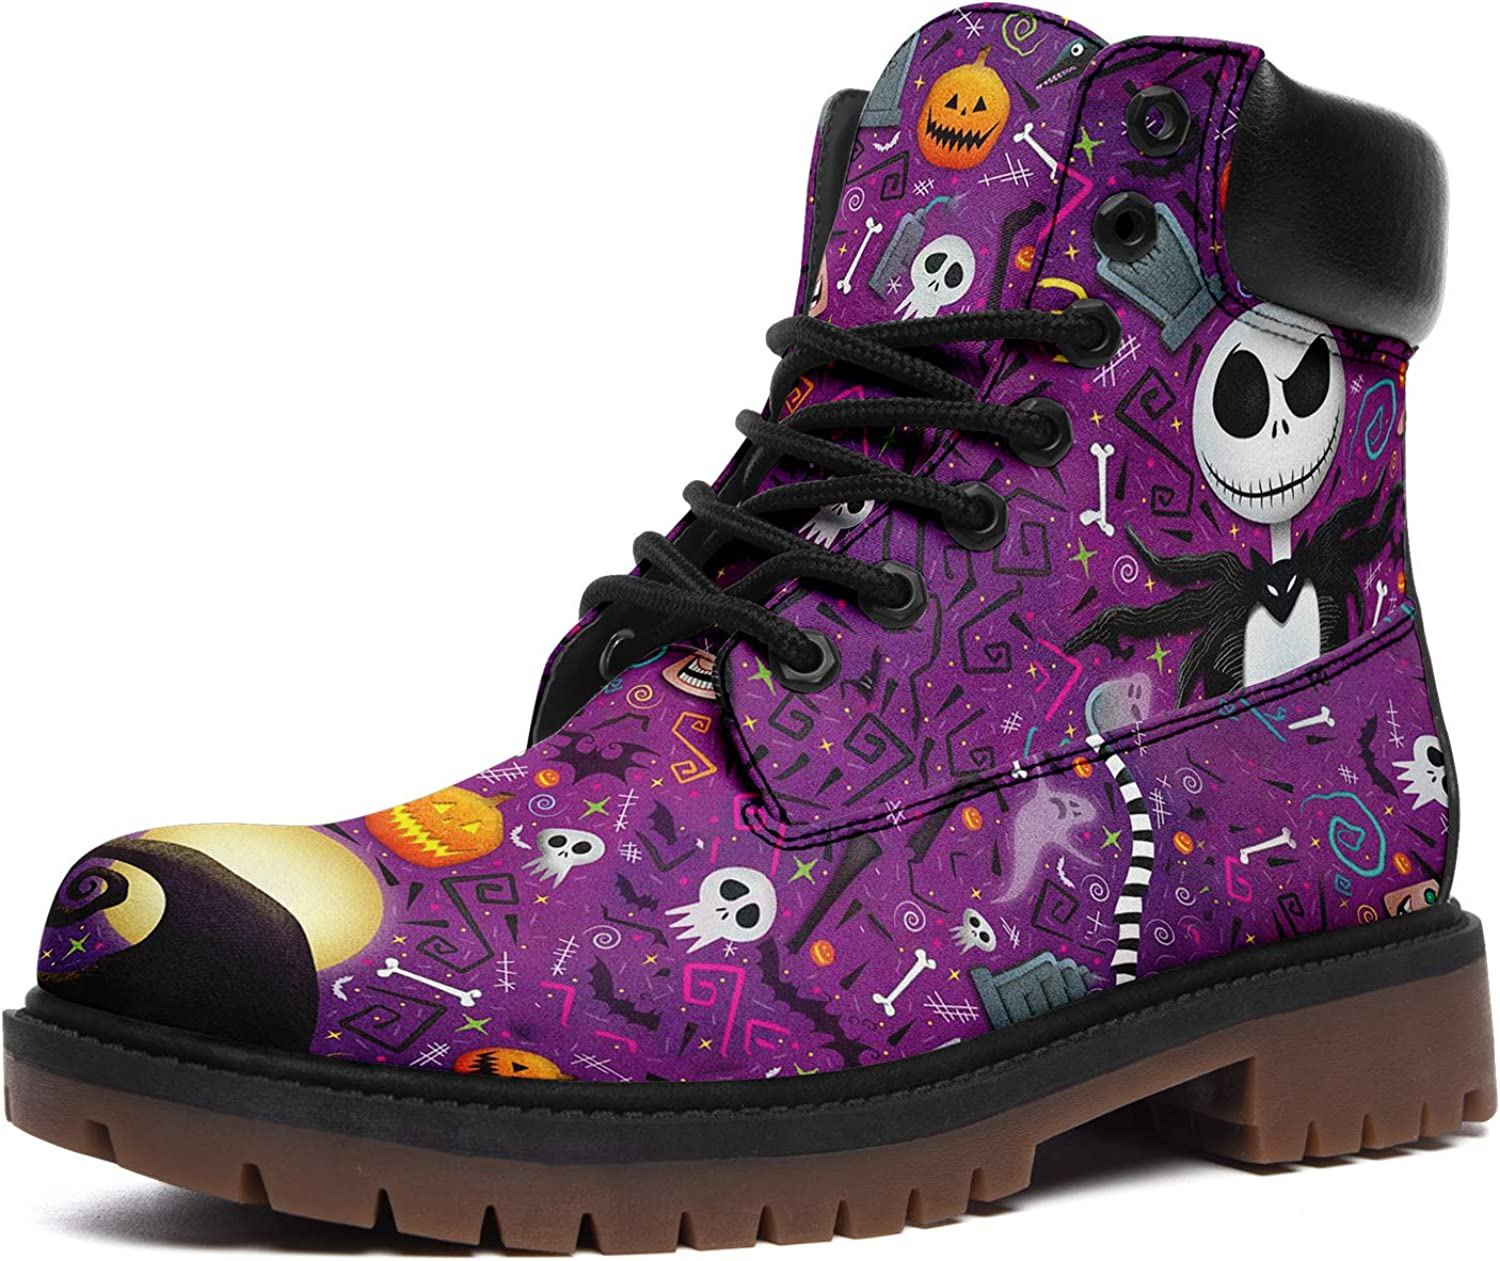 Nightmare Before Christmas Boots for Men Women Custom Lace-up Anti-Slip Leather Jack Skellington Hiking Boots Gifts for Christmas